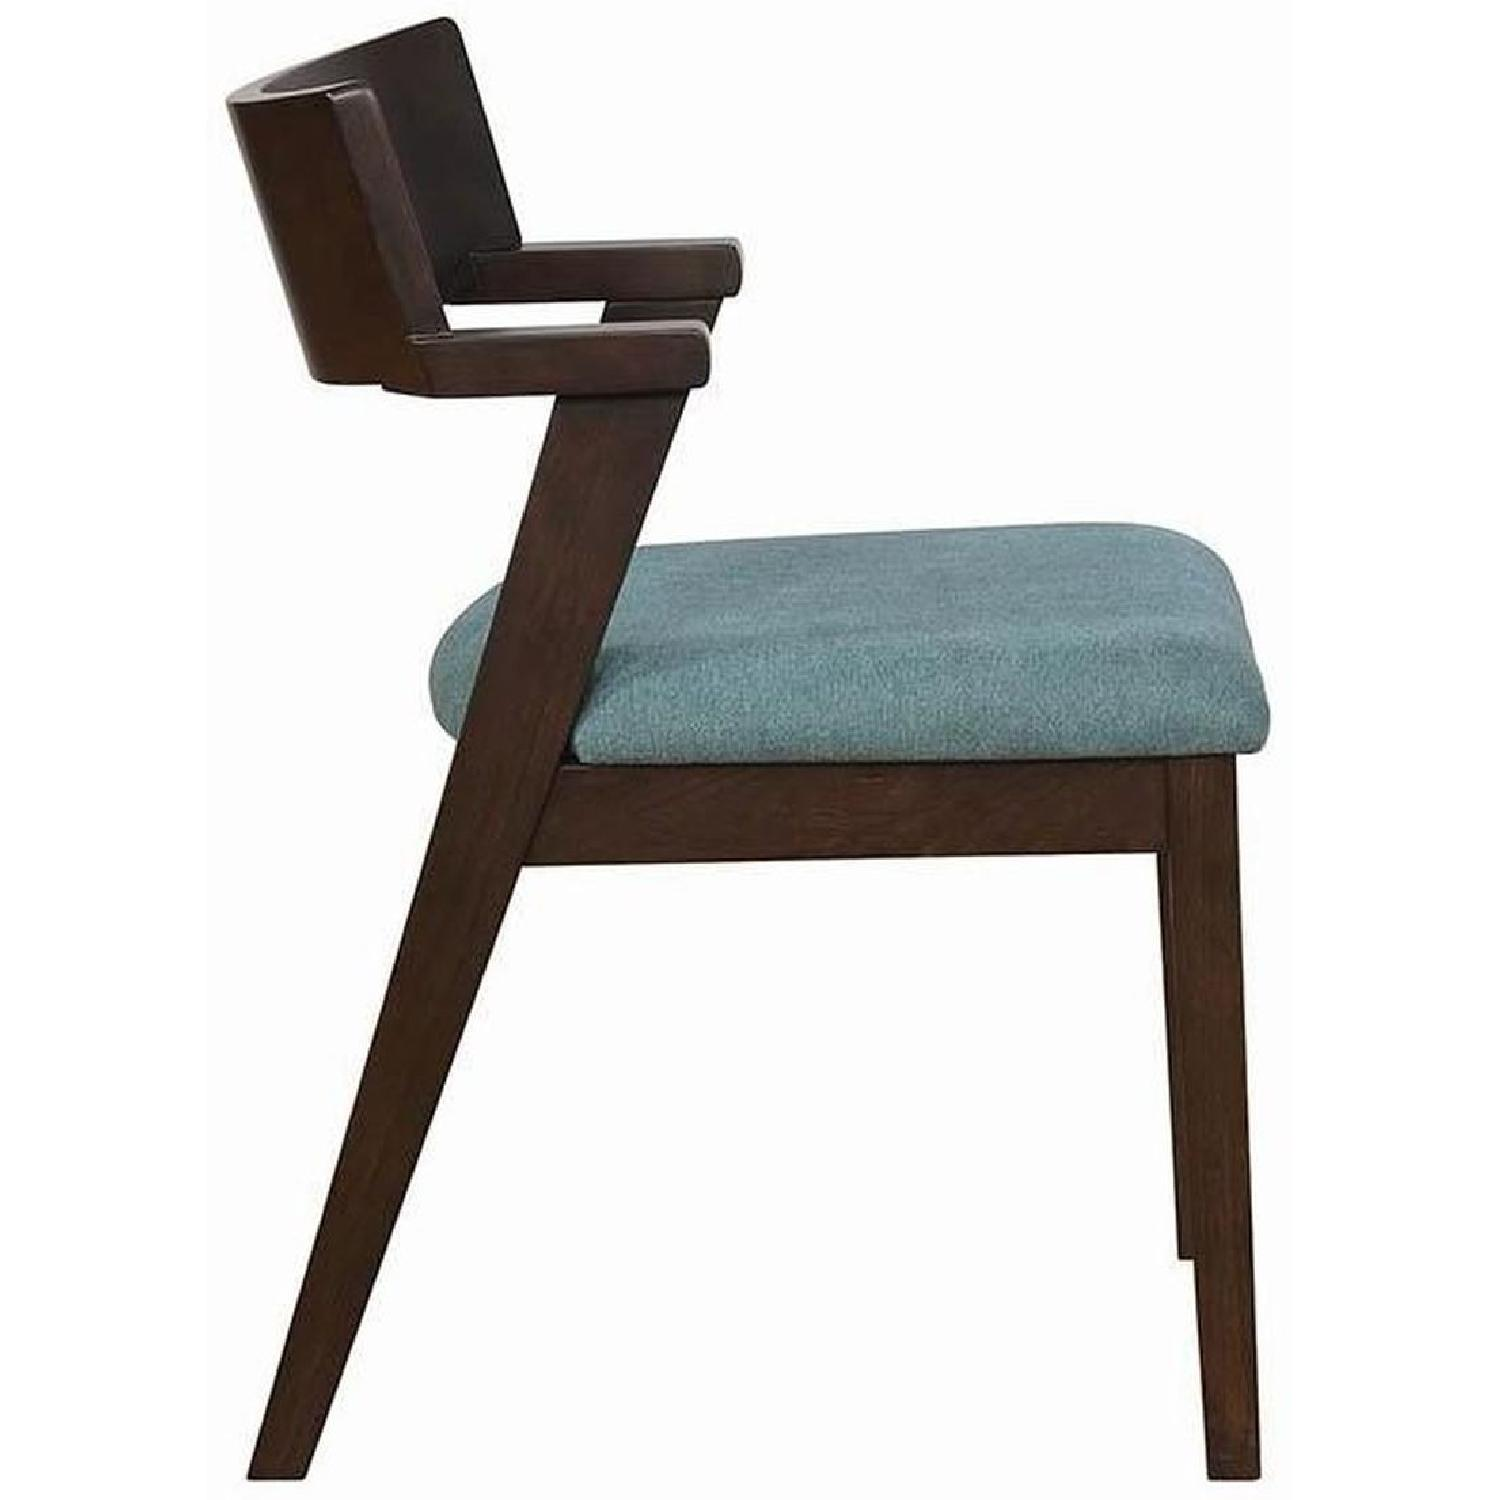 Mid Century Style Dining Chair w/ Teal Cushioned Seat - image-3